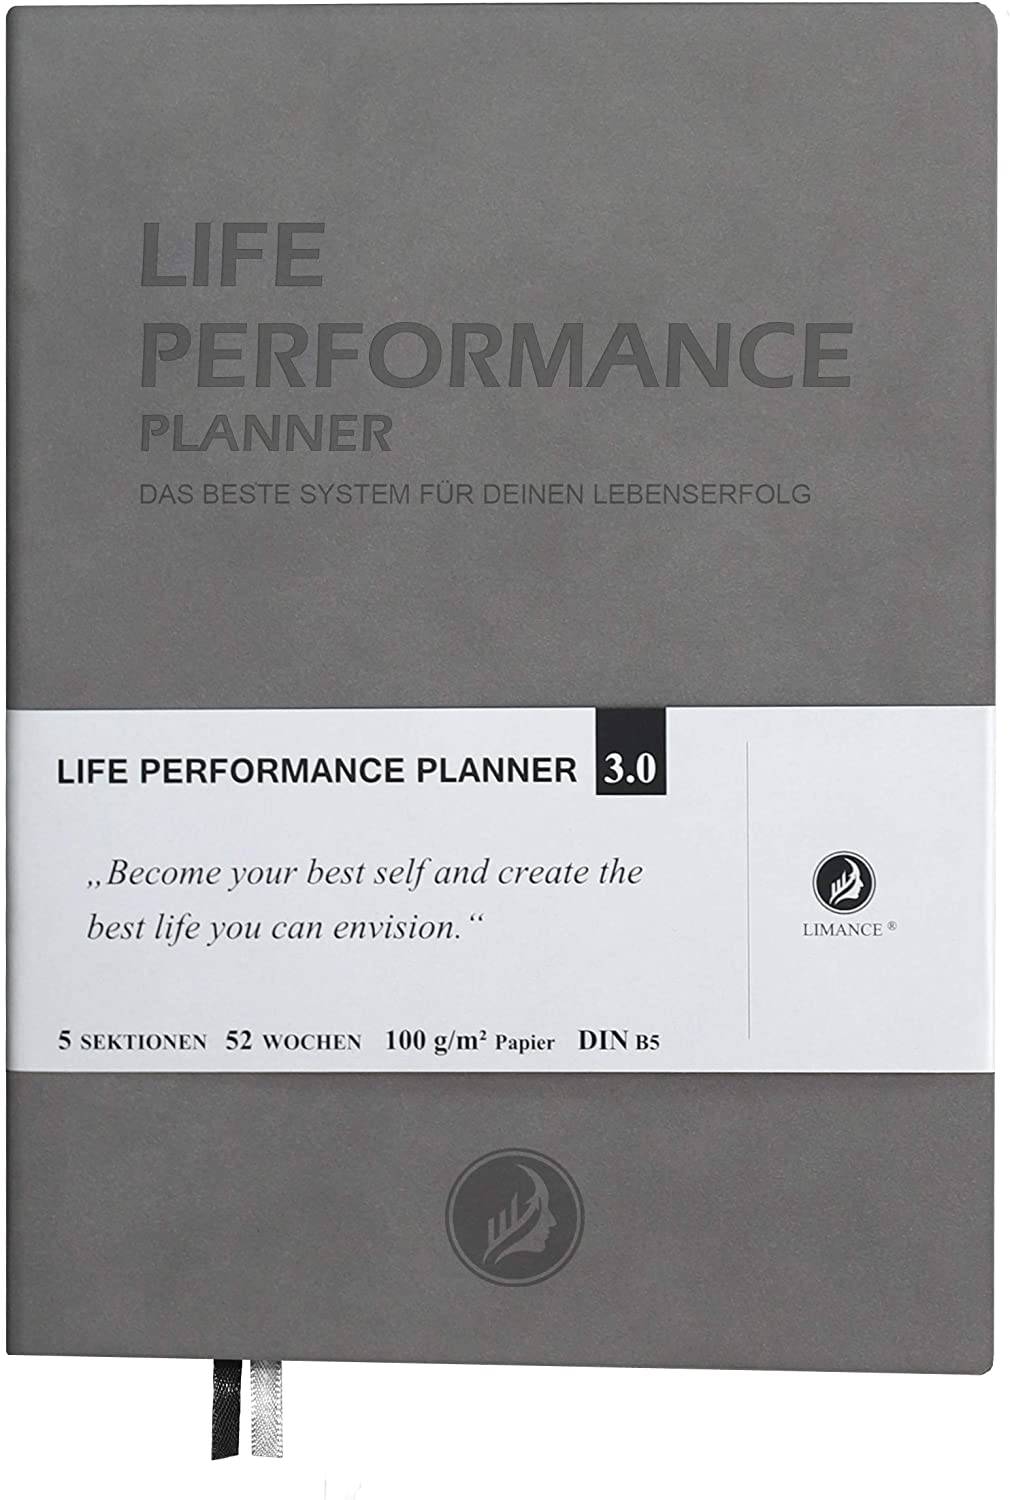 Life Performance Planner 3.0